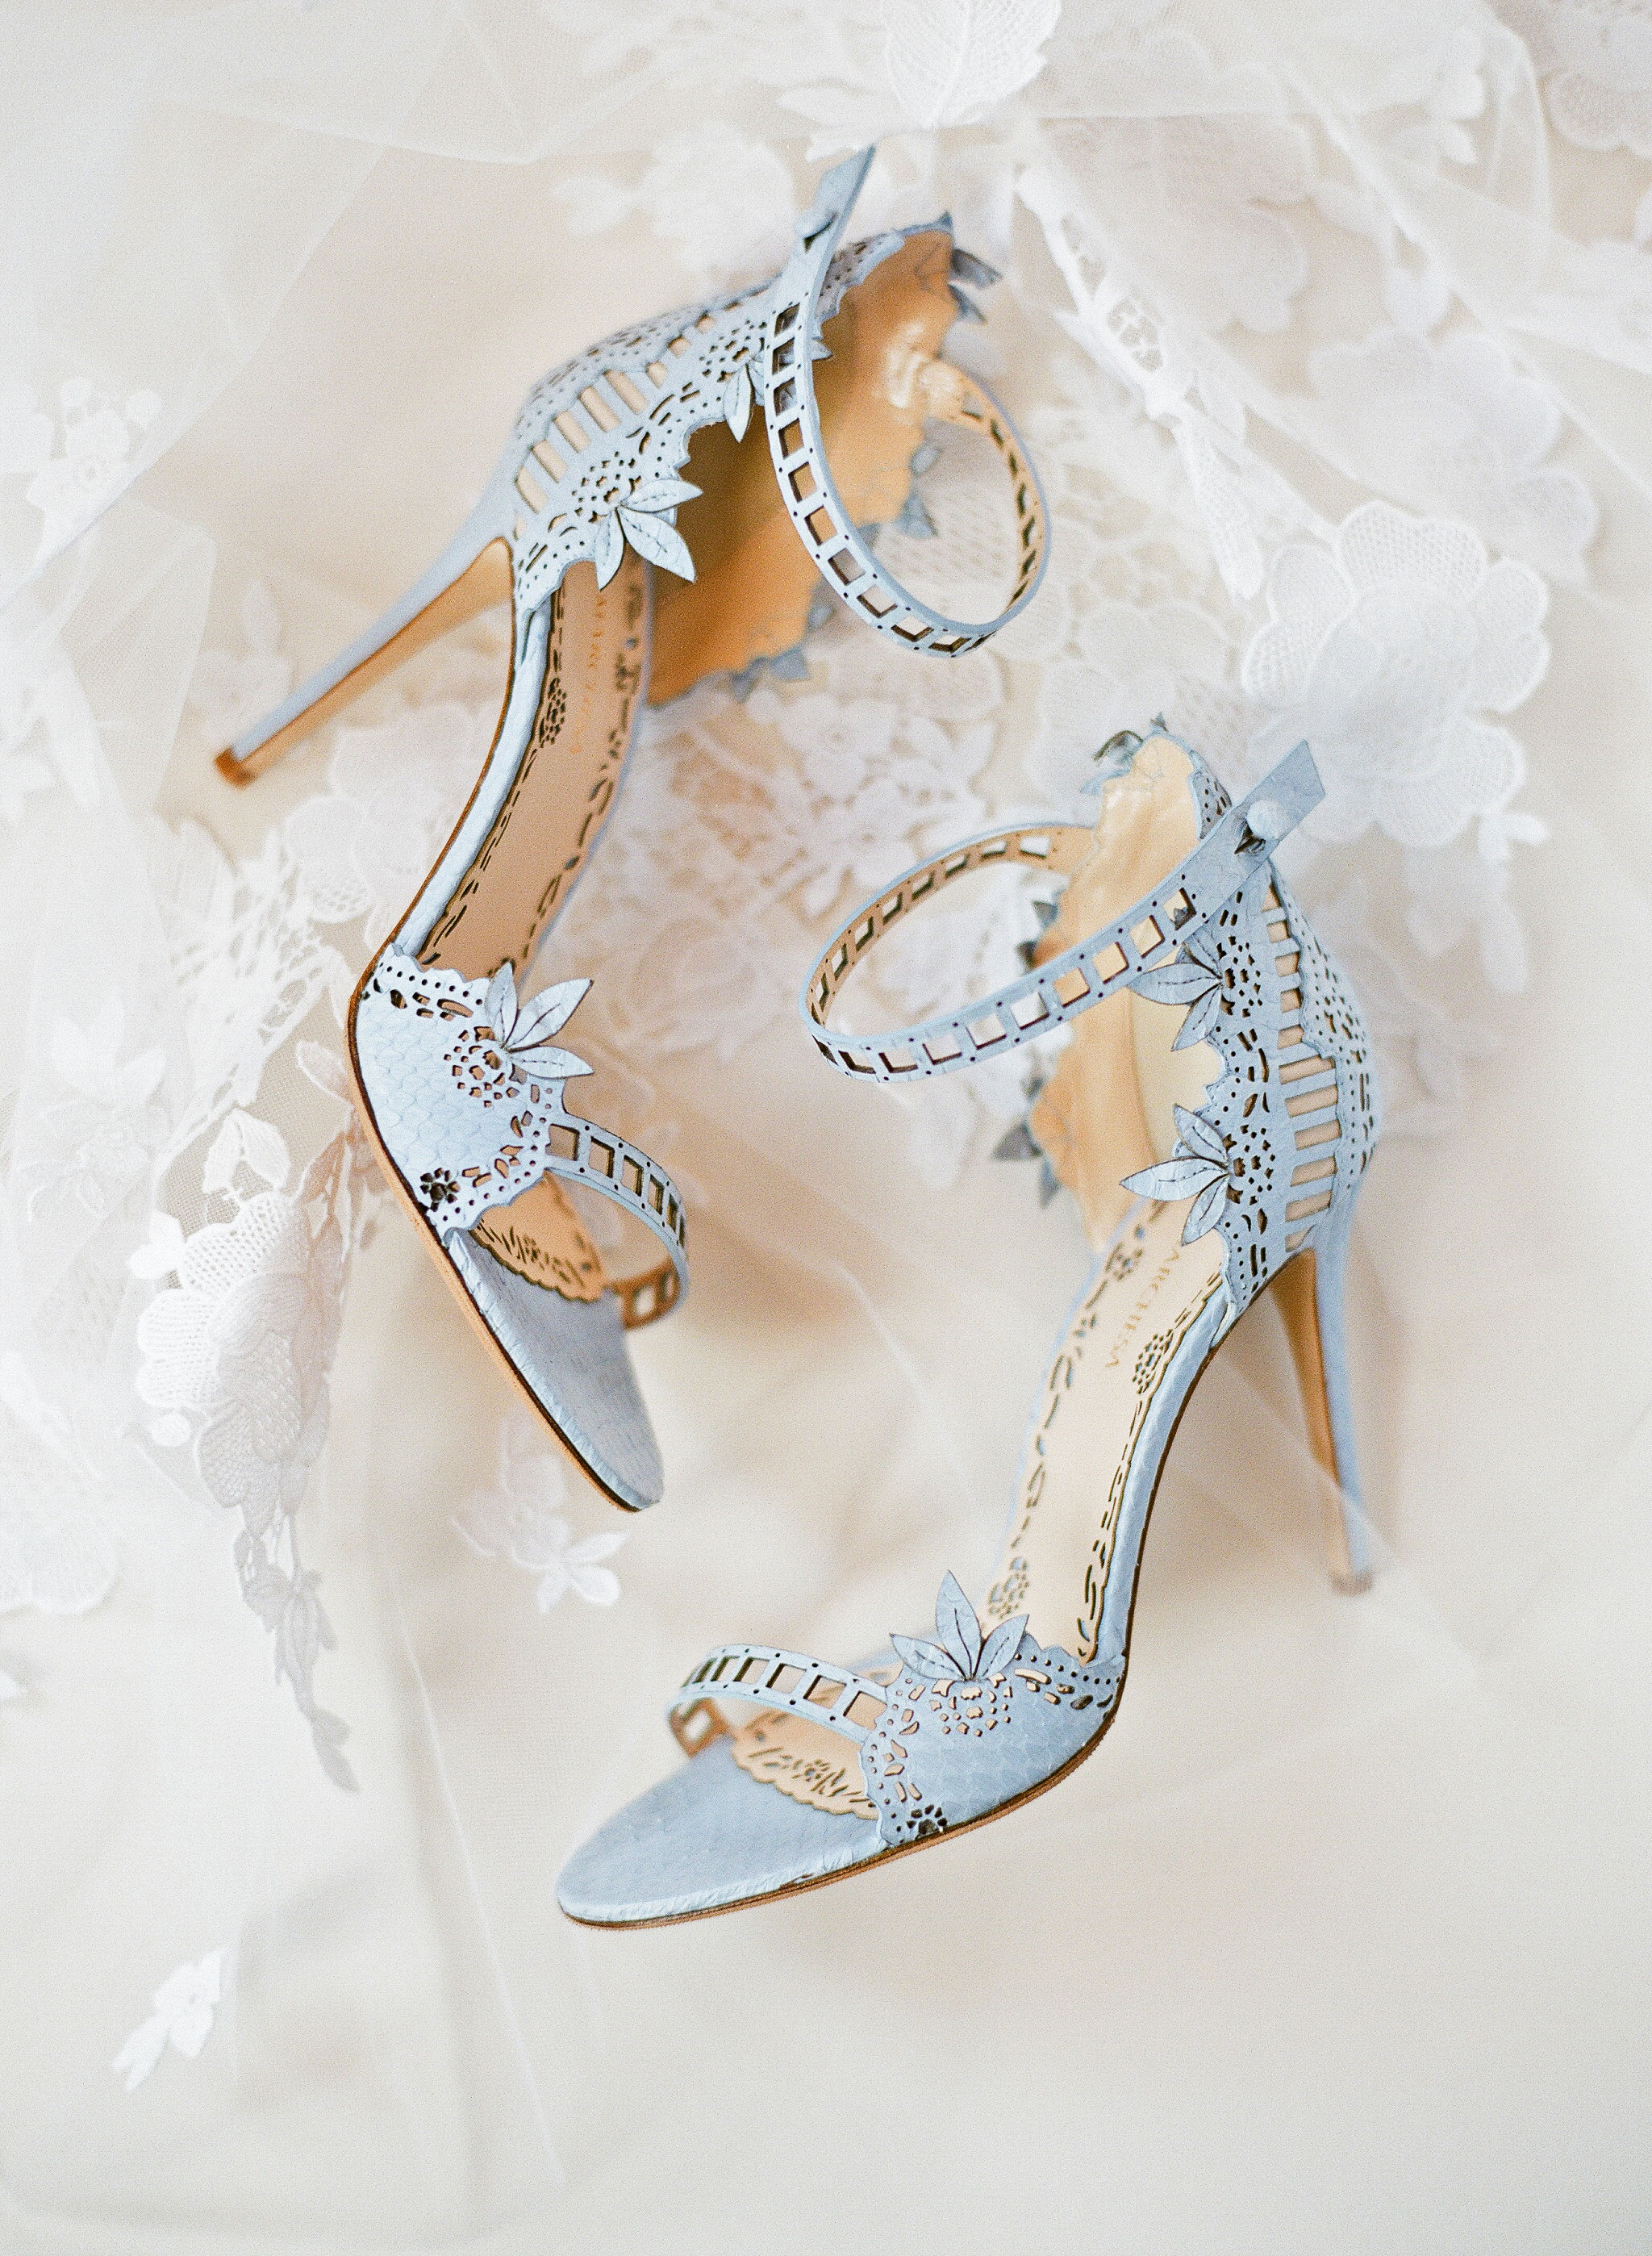 natalie jamey wedding shoes